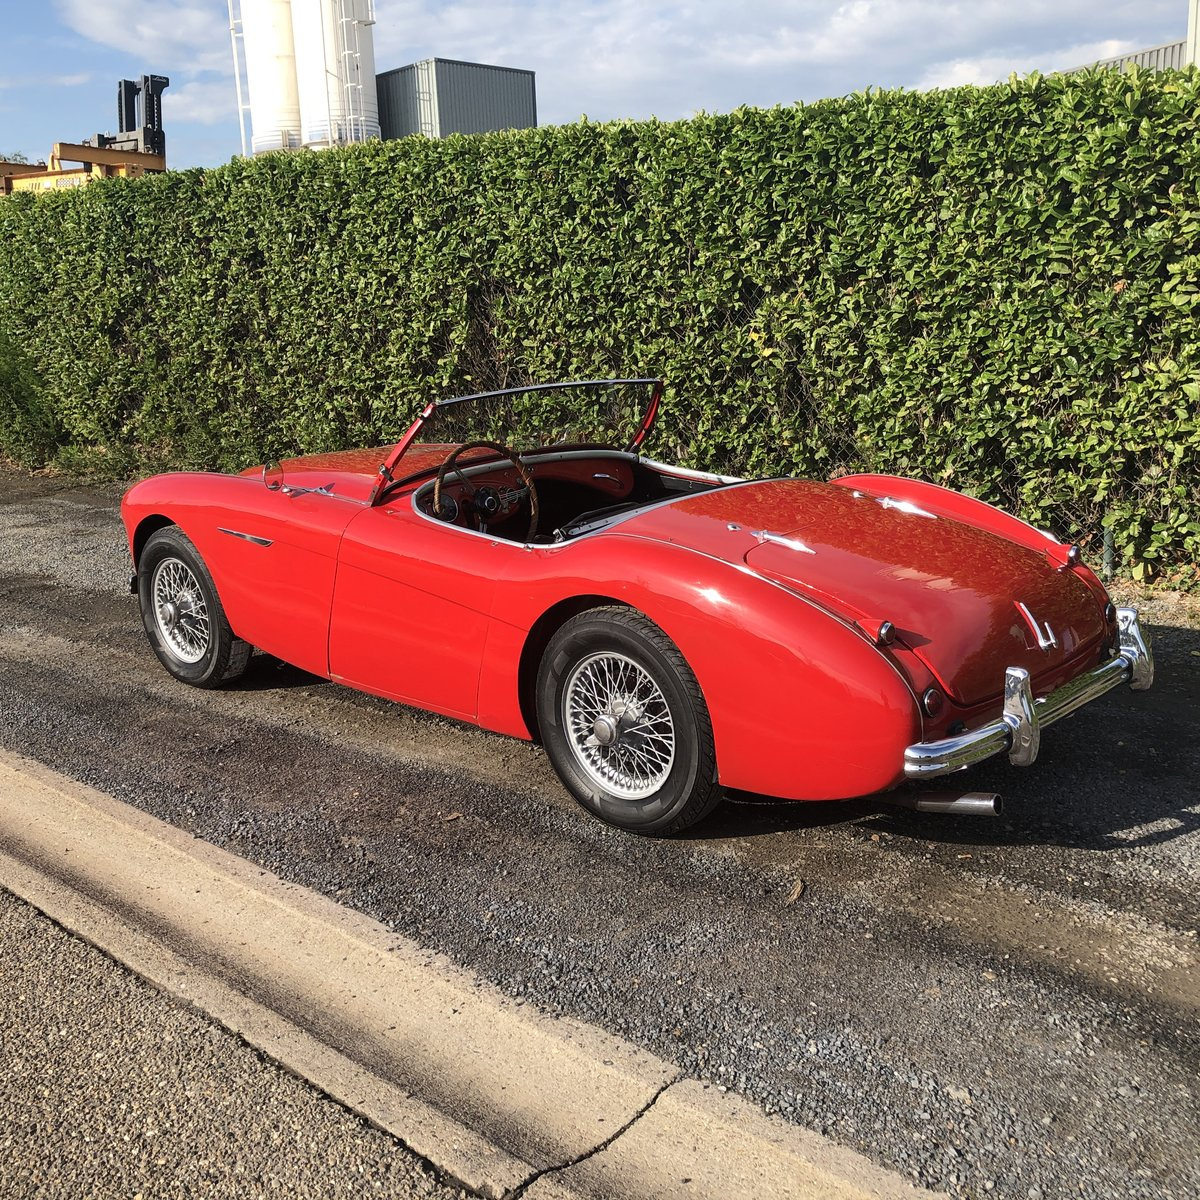 1955 Austin Healey 100/4 BN2 LHD For Sale (picture 2 of 6)